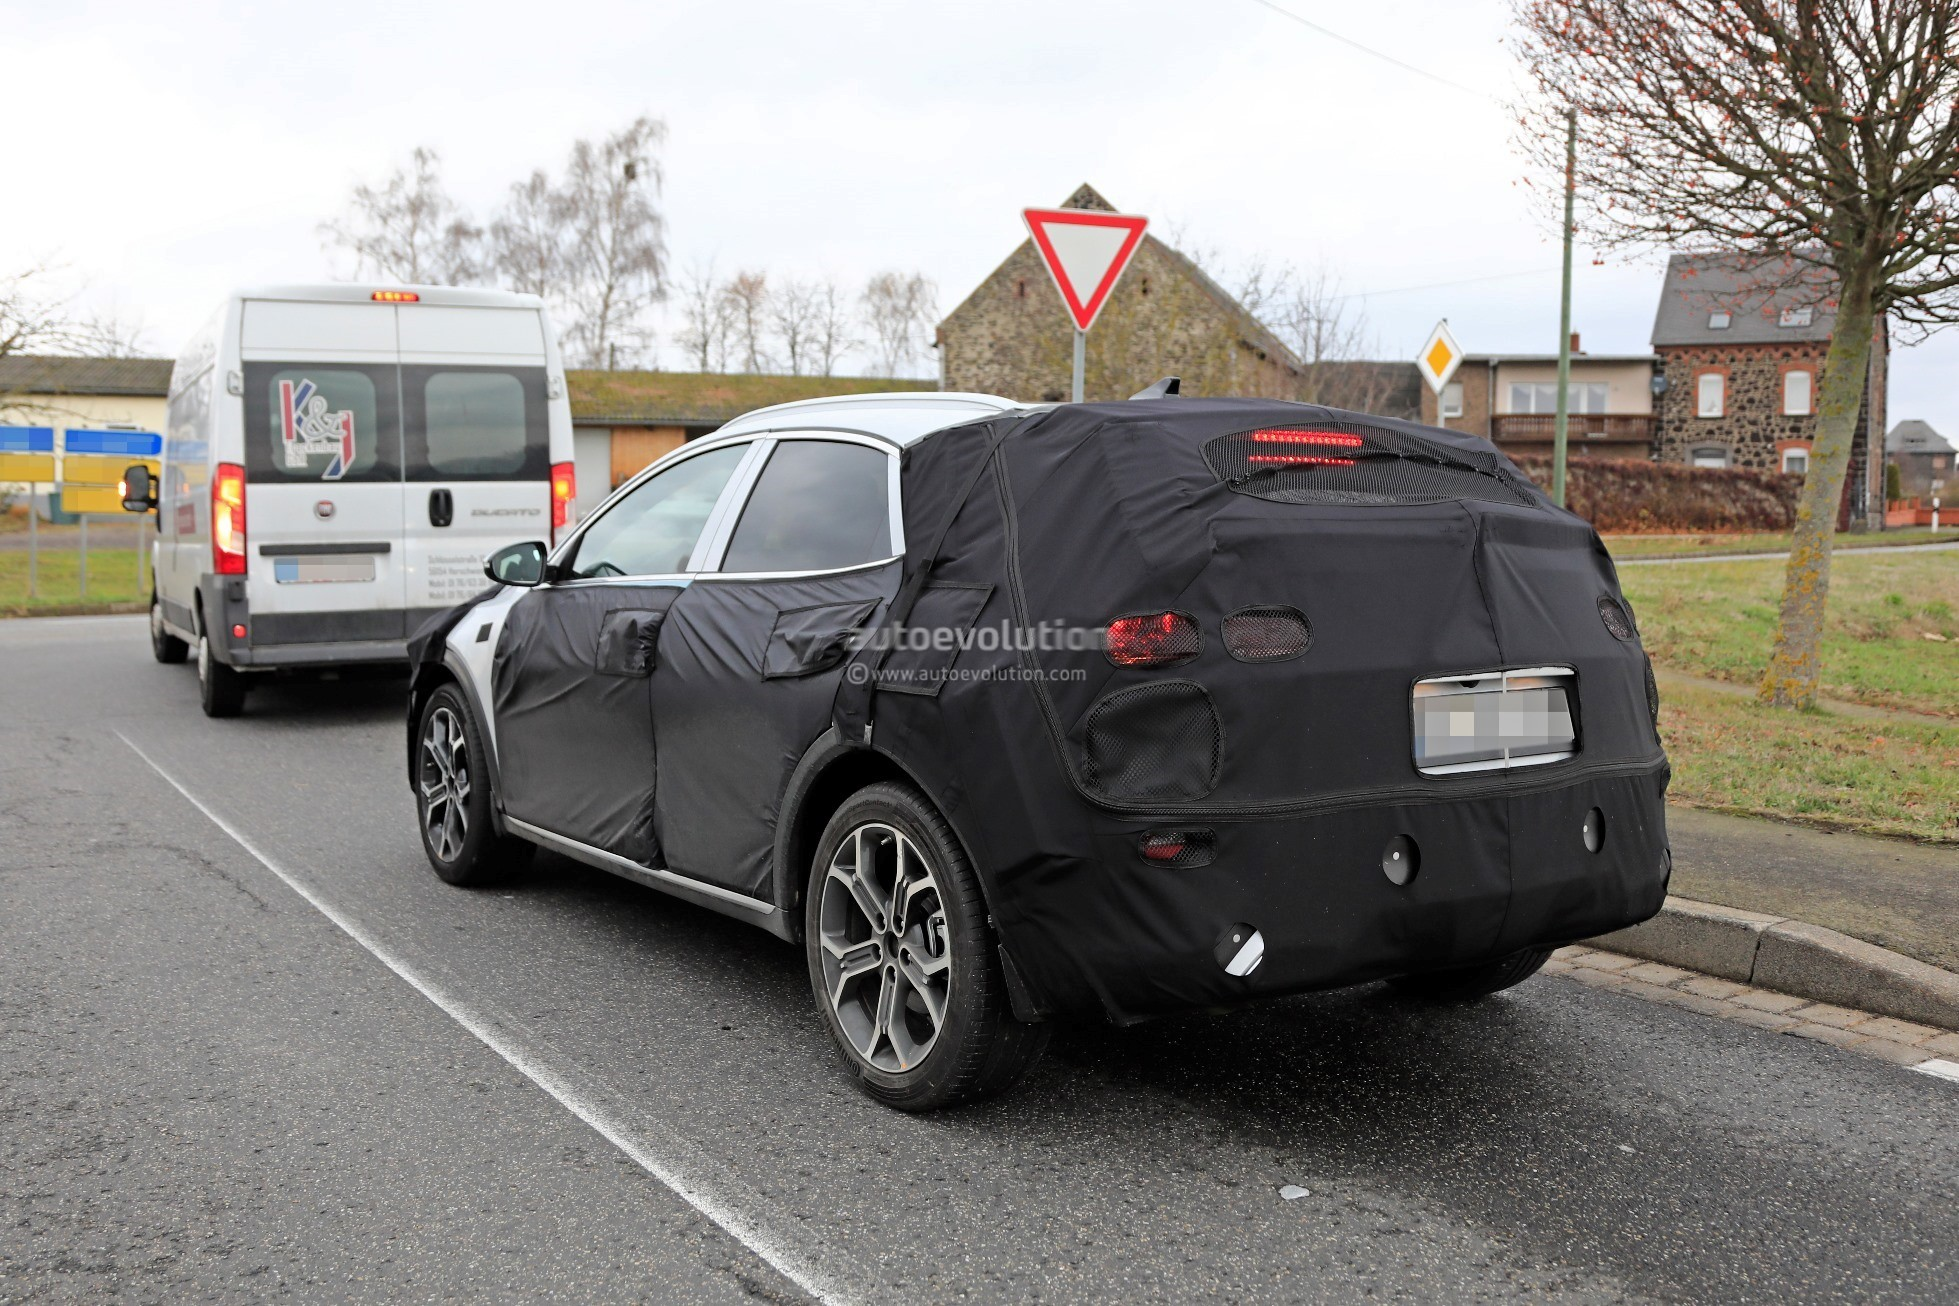 2020 Kia Ceed-based Crossover Spied Testing In Germany - autoevolution